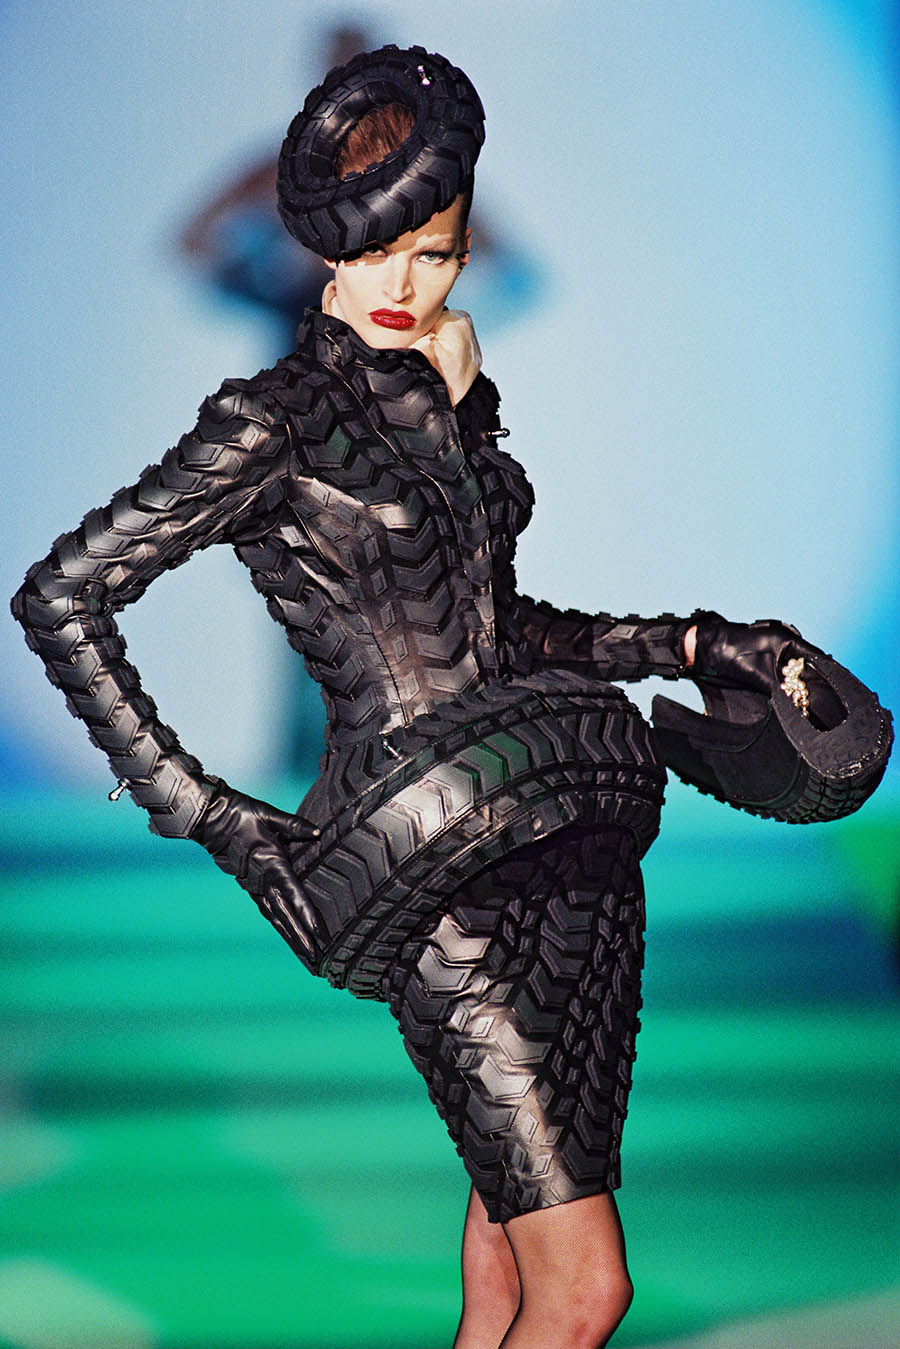 Informative Image of Thierry Mugler's 1997 Haute Couture